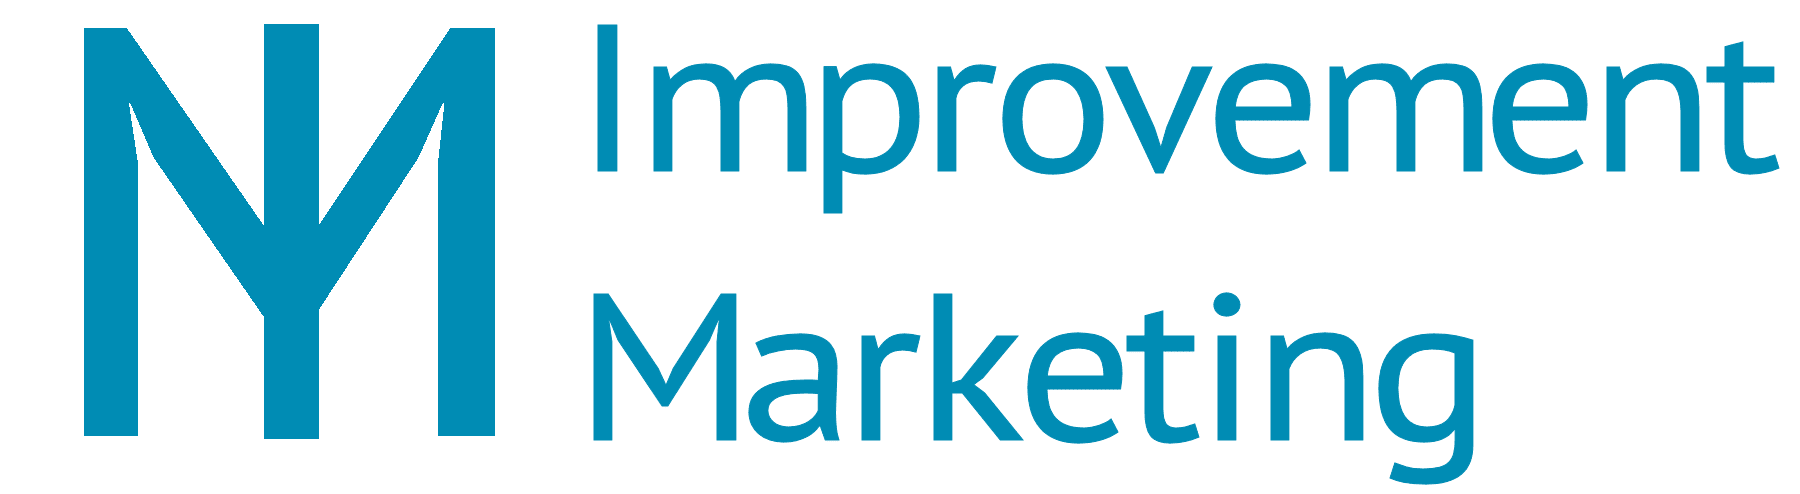 Improvement Marketing